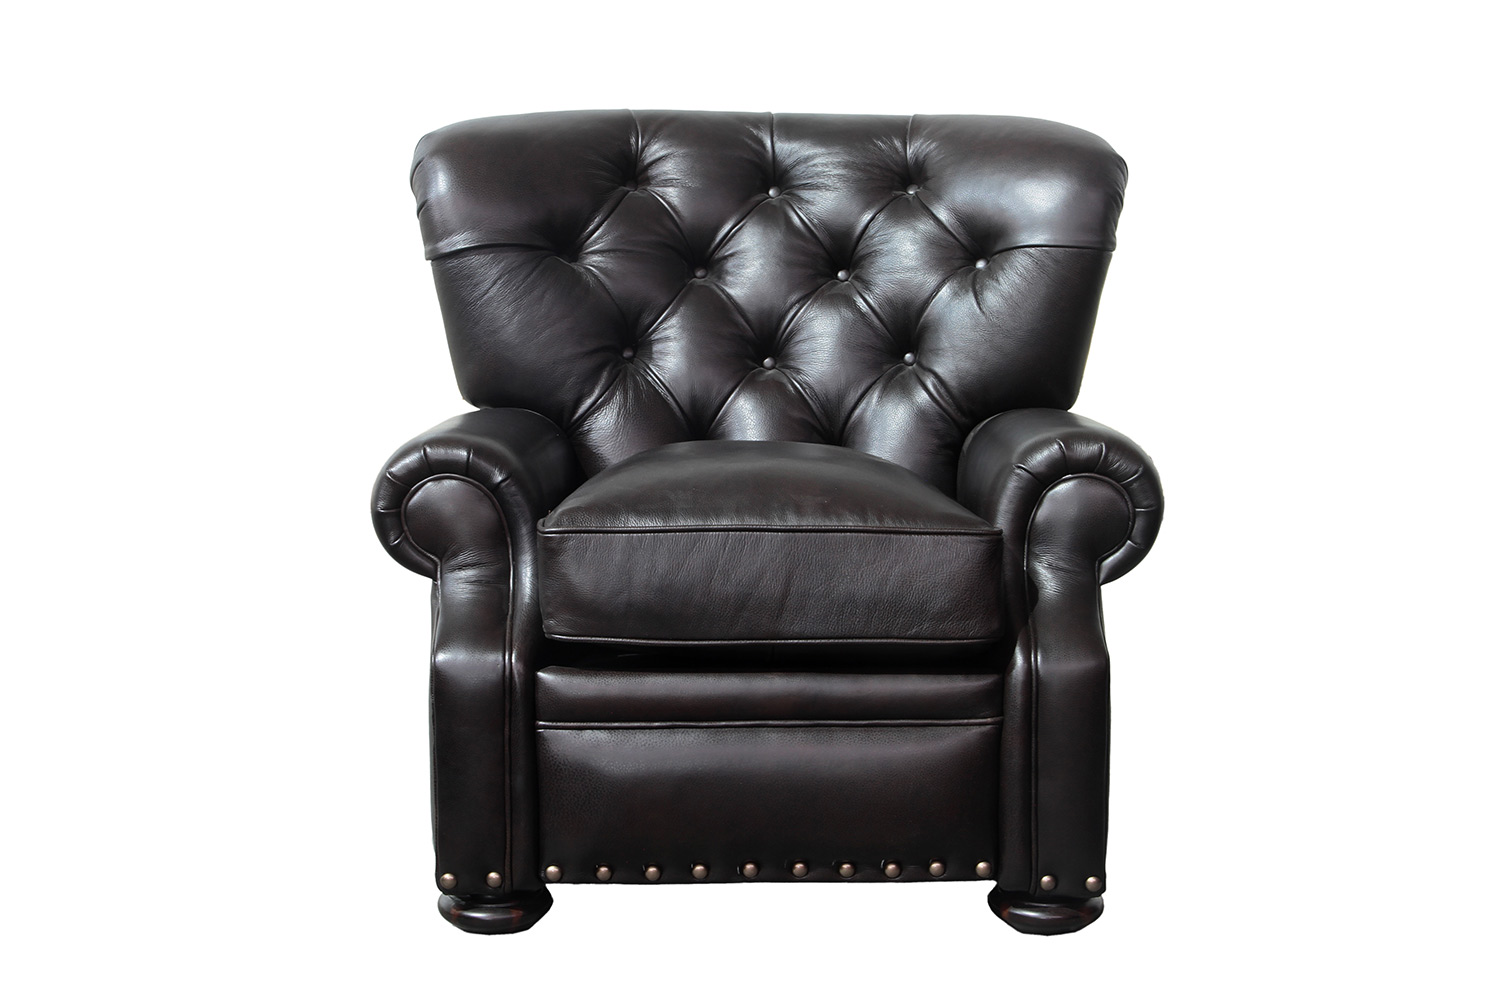 Barcalounger Sinclair Recliner Chair - Shoreham Fudge/All Leather